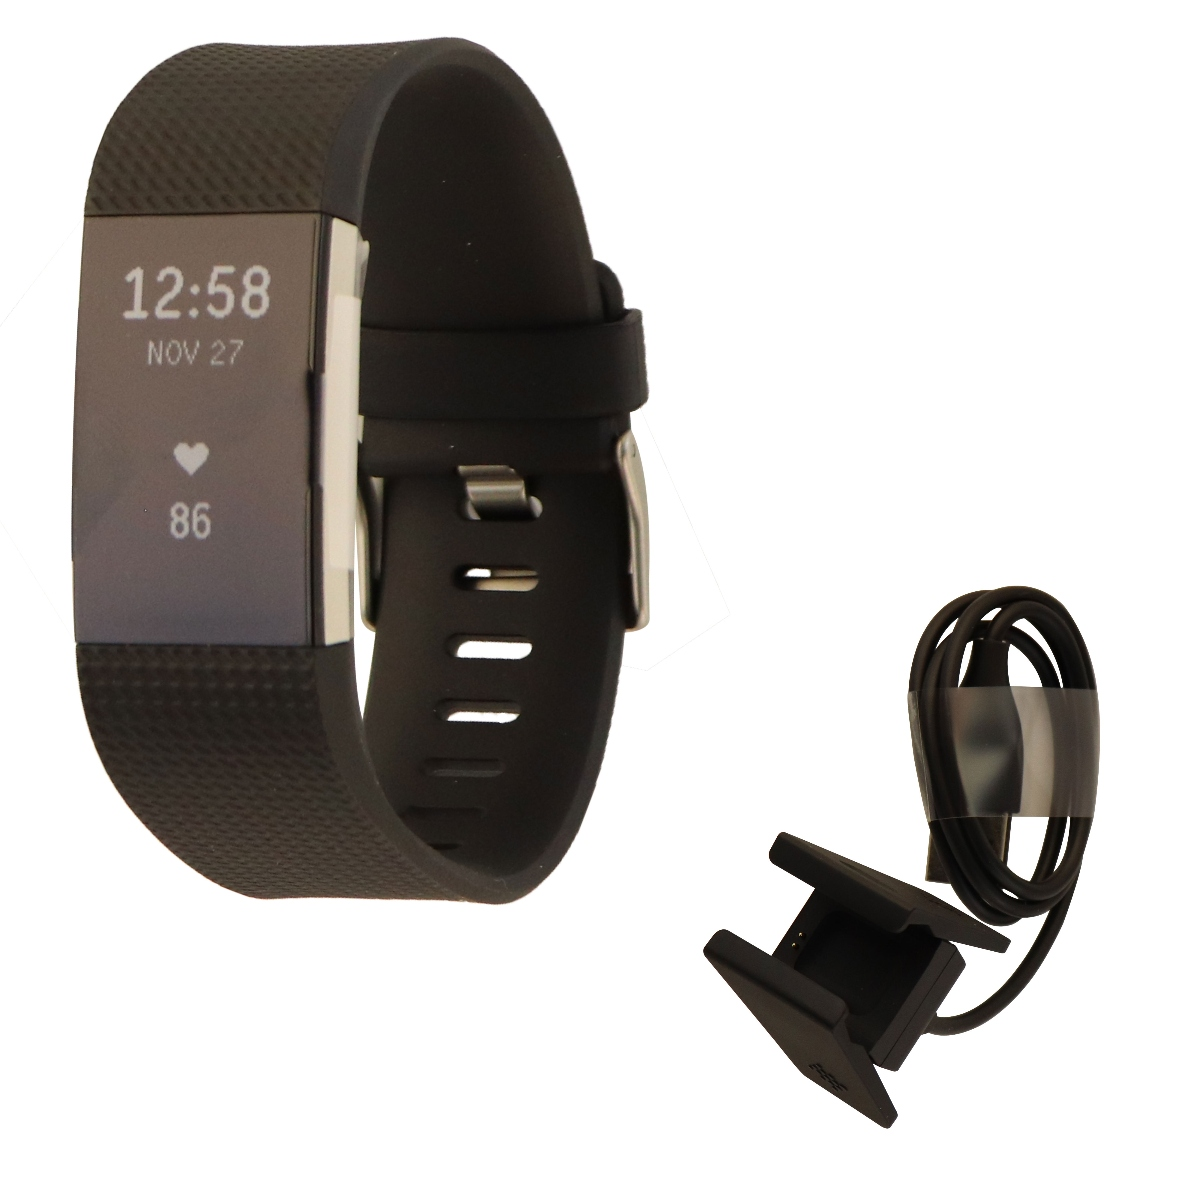 Fitbit Charge 2 Heart Rate + Fitness Wristband Watch, Black, Large (US Version)